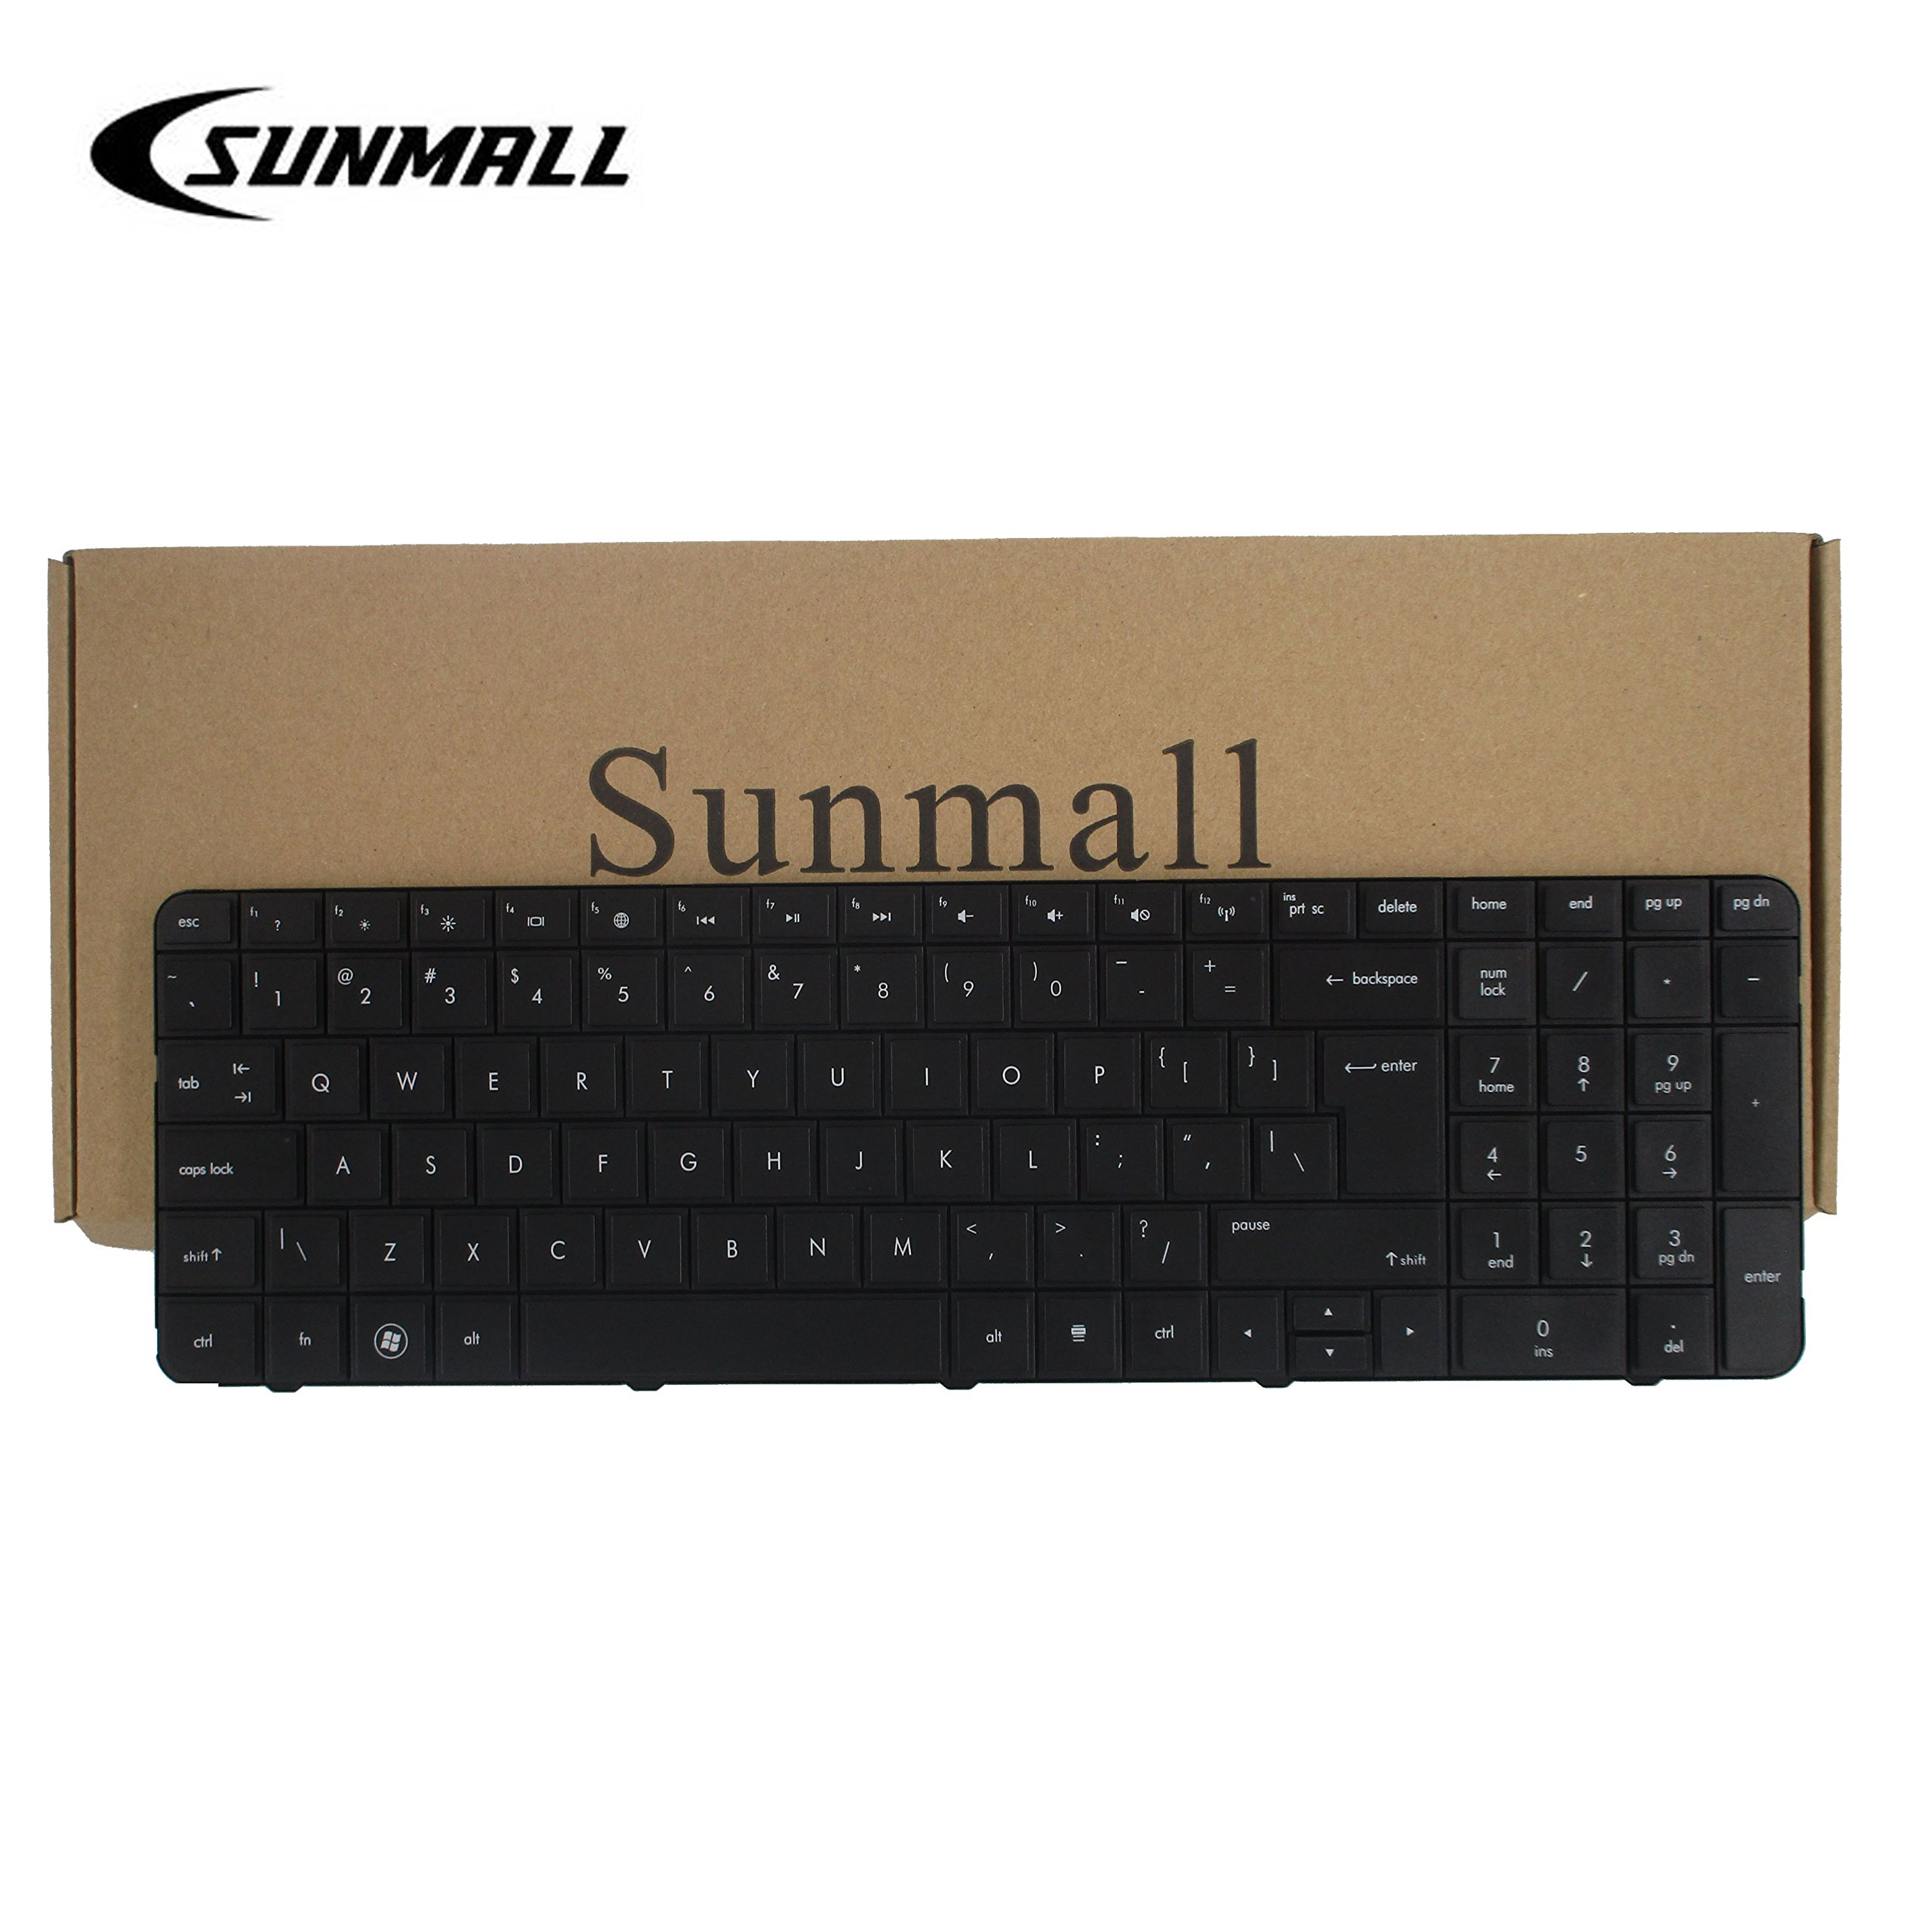 SUNMALL Laptop Keyboard with Big Enter for HP Pavilion G7 G7T R18 g7-1000 G7T-1000 G7-1100 G7-1150 G7-1200 G7-1310 Series g7-1219wm g7-1330ca g7-1329wm g7-1355dx g7-1260us Black US Layout(6 Months Wa